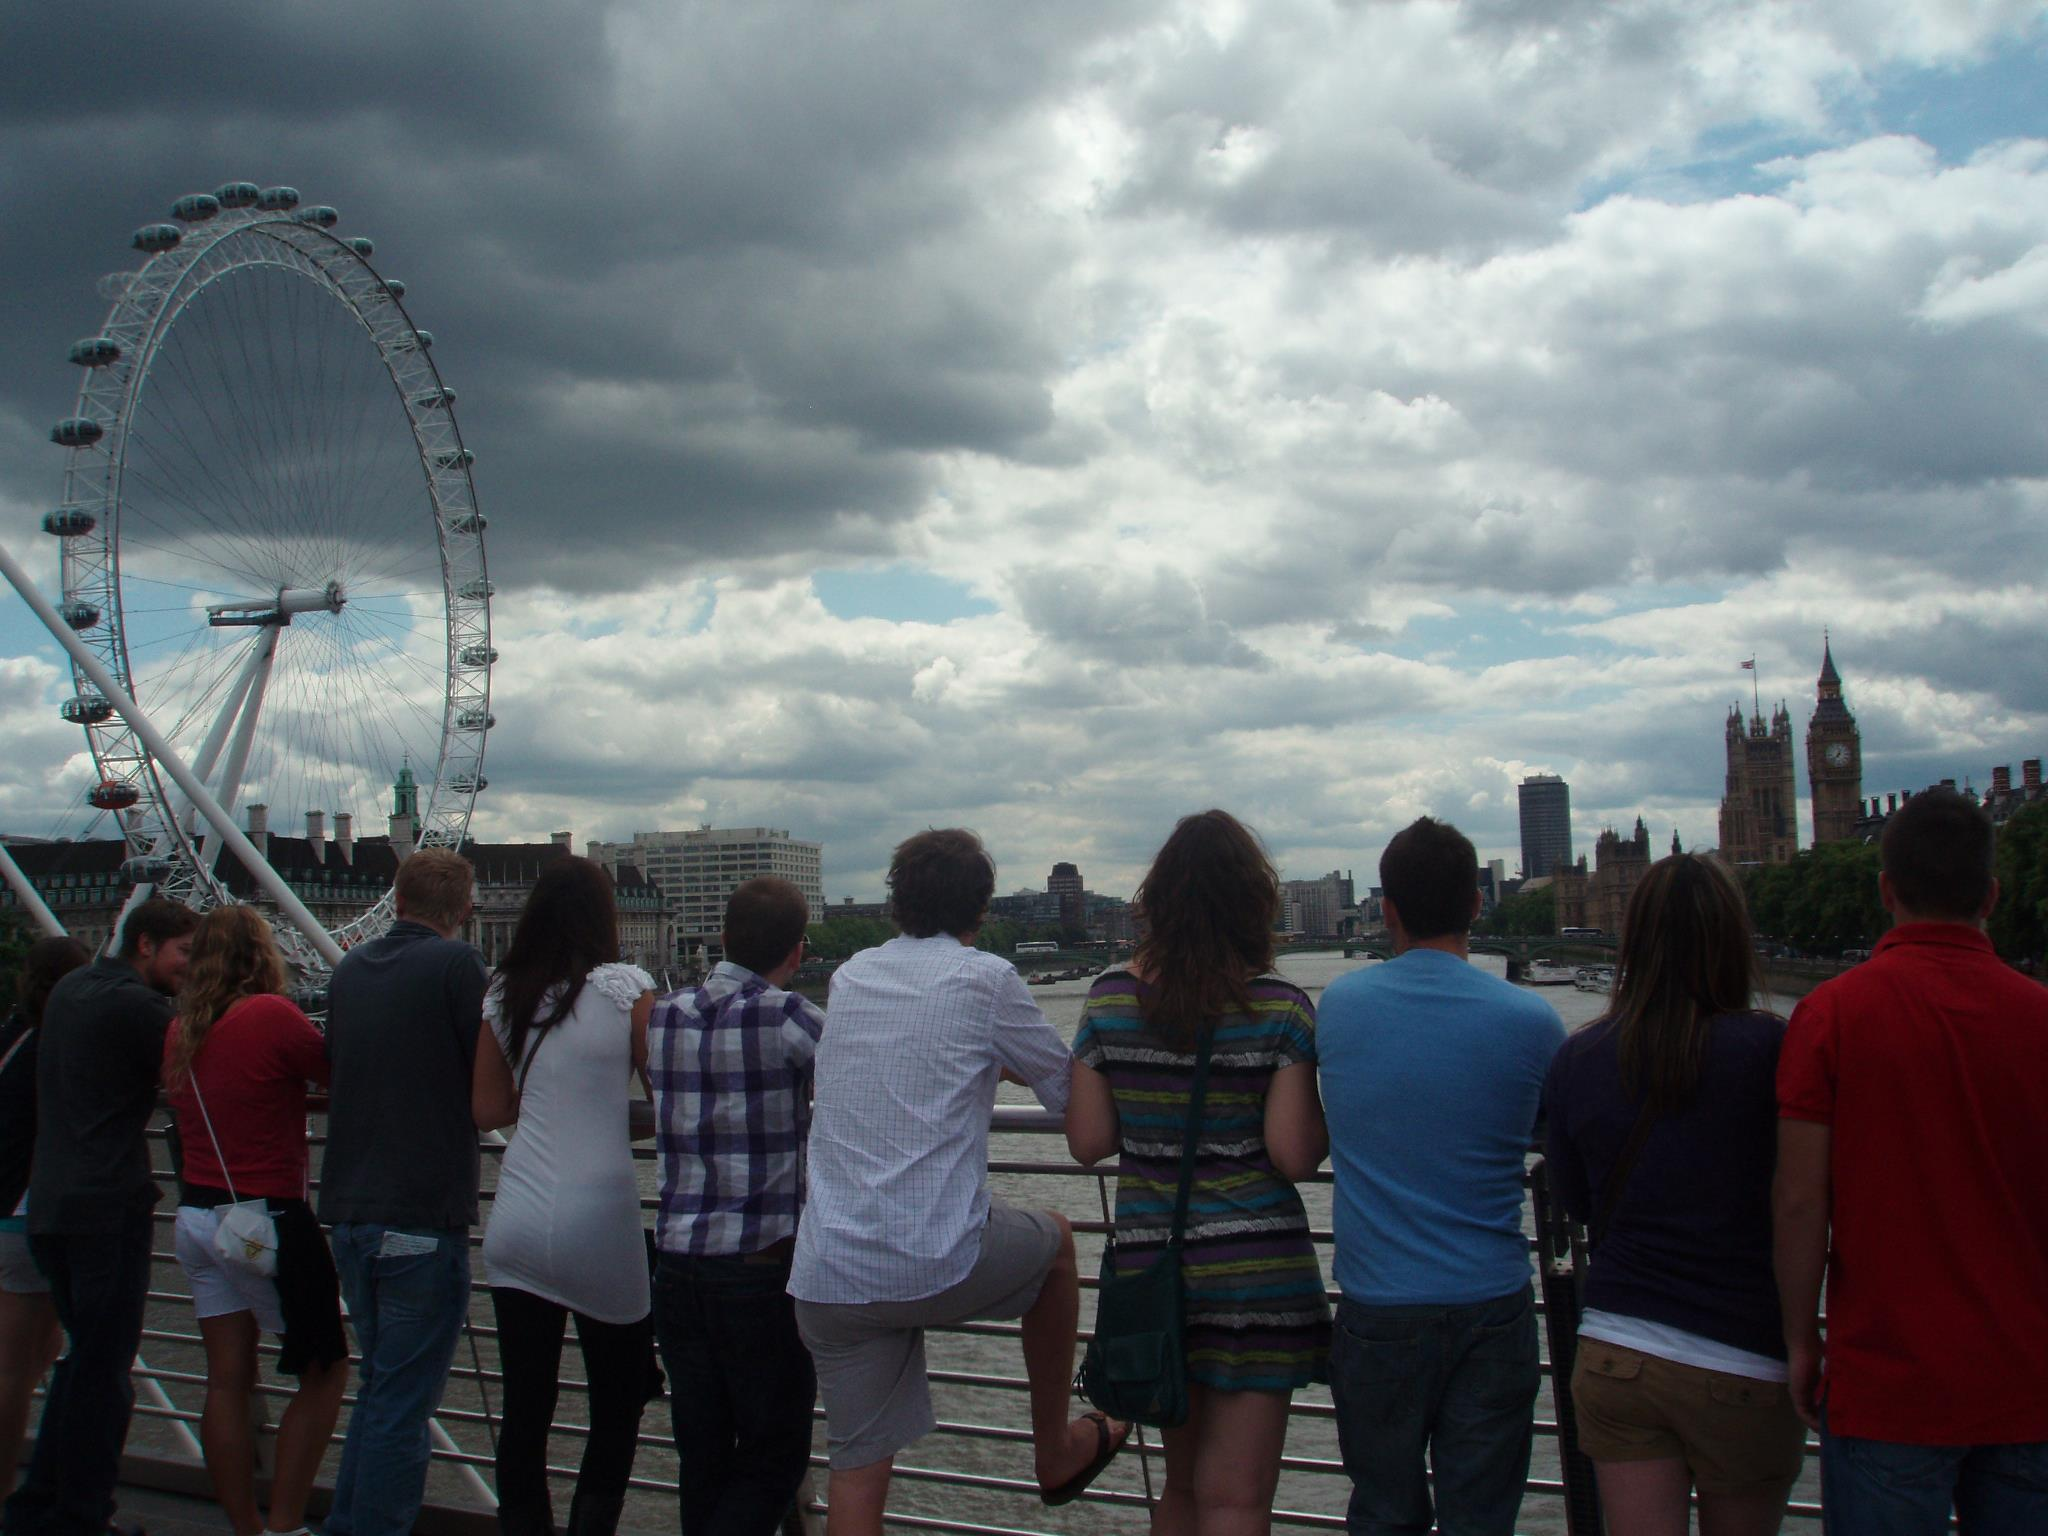 Students enjoy the view of Big Ben, the London Eye, and the River Thames.